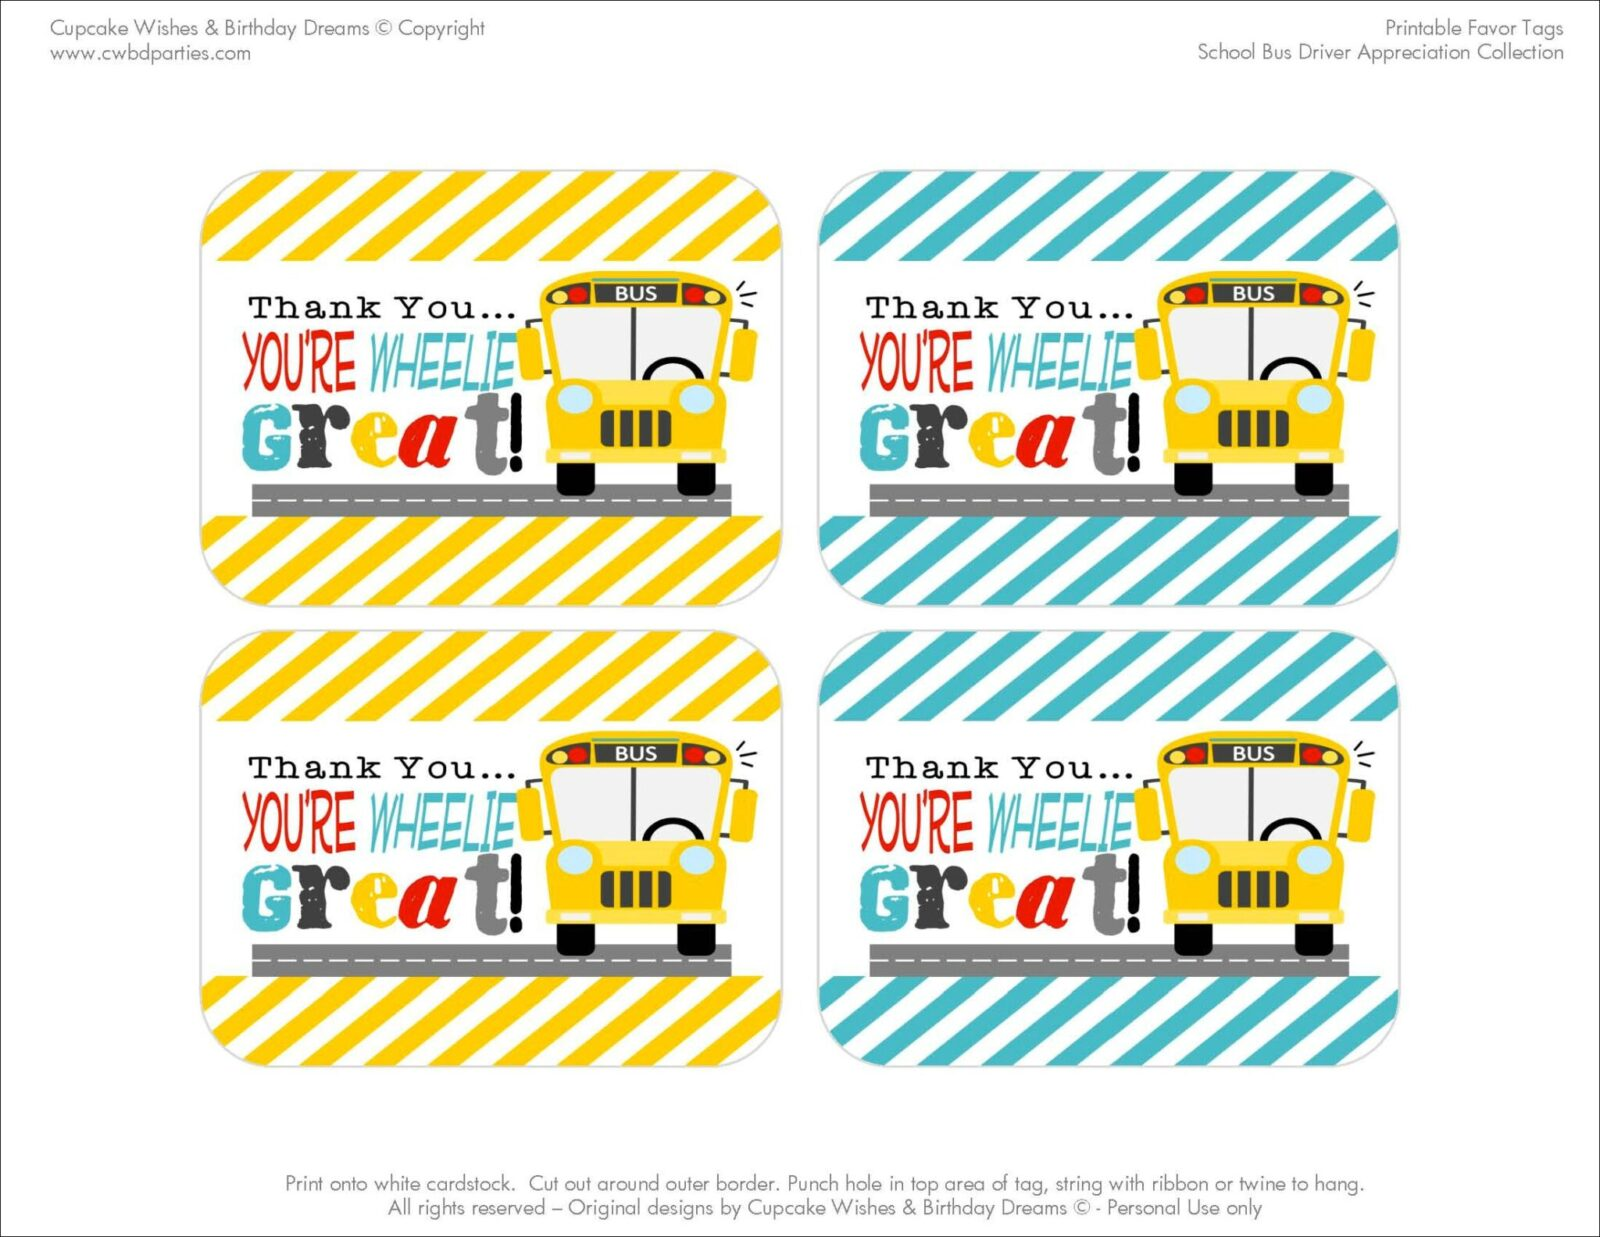 Free printables school bus driver appreciation school bus thank you printablespage3 negle Images